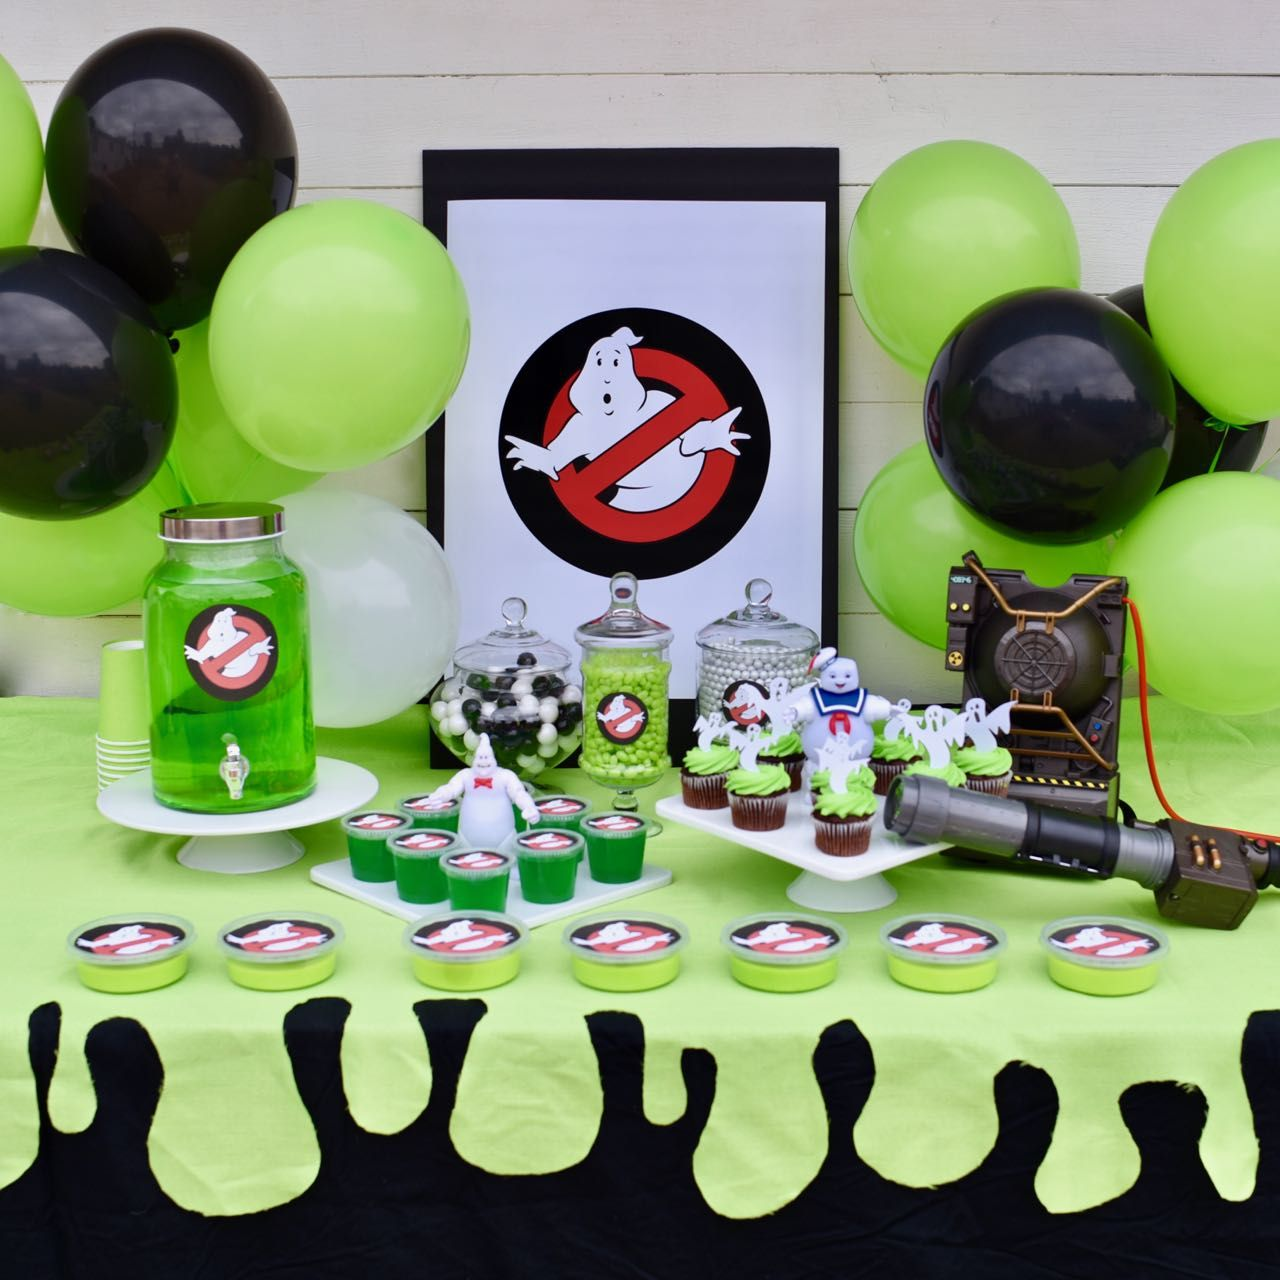 Ghostbusters Party Ideas For The Ultimate Ghostbusters